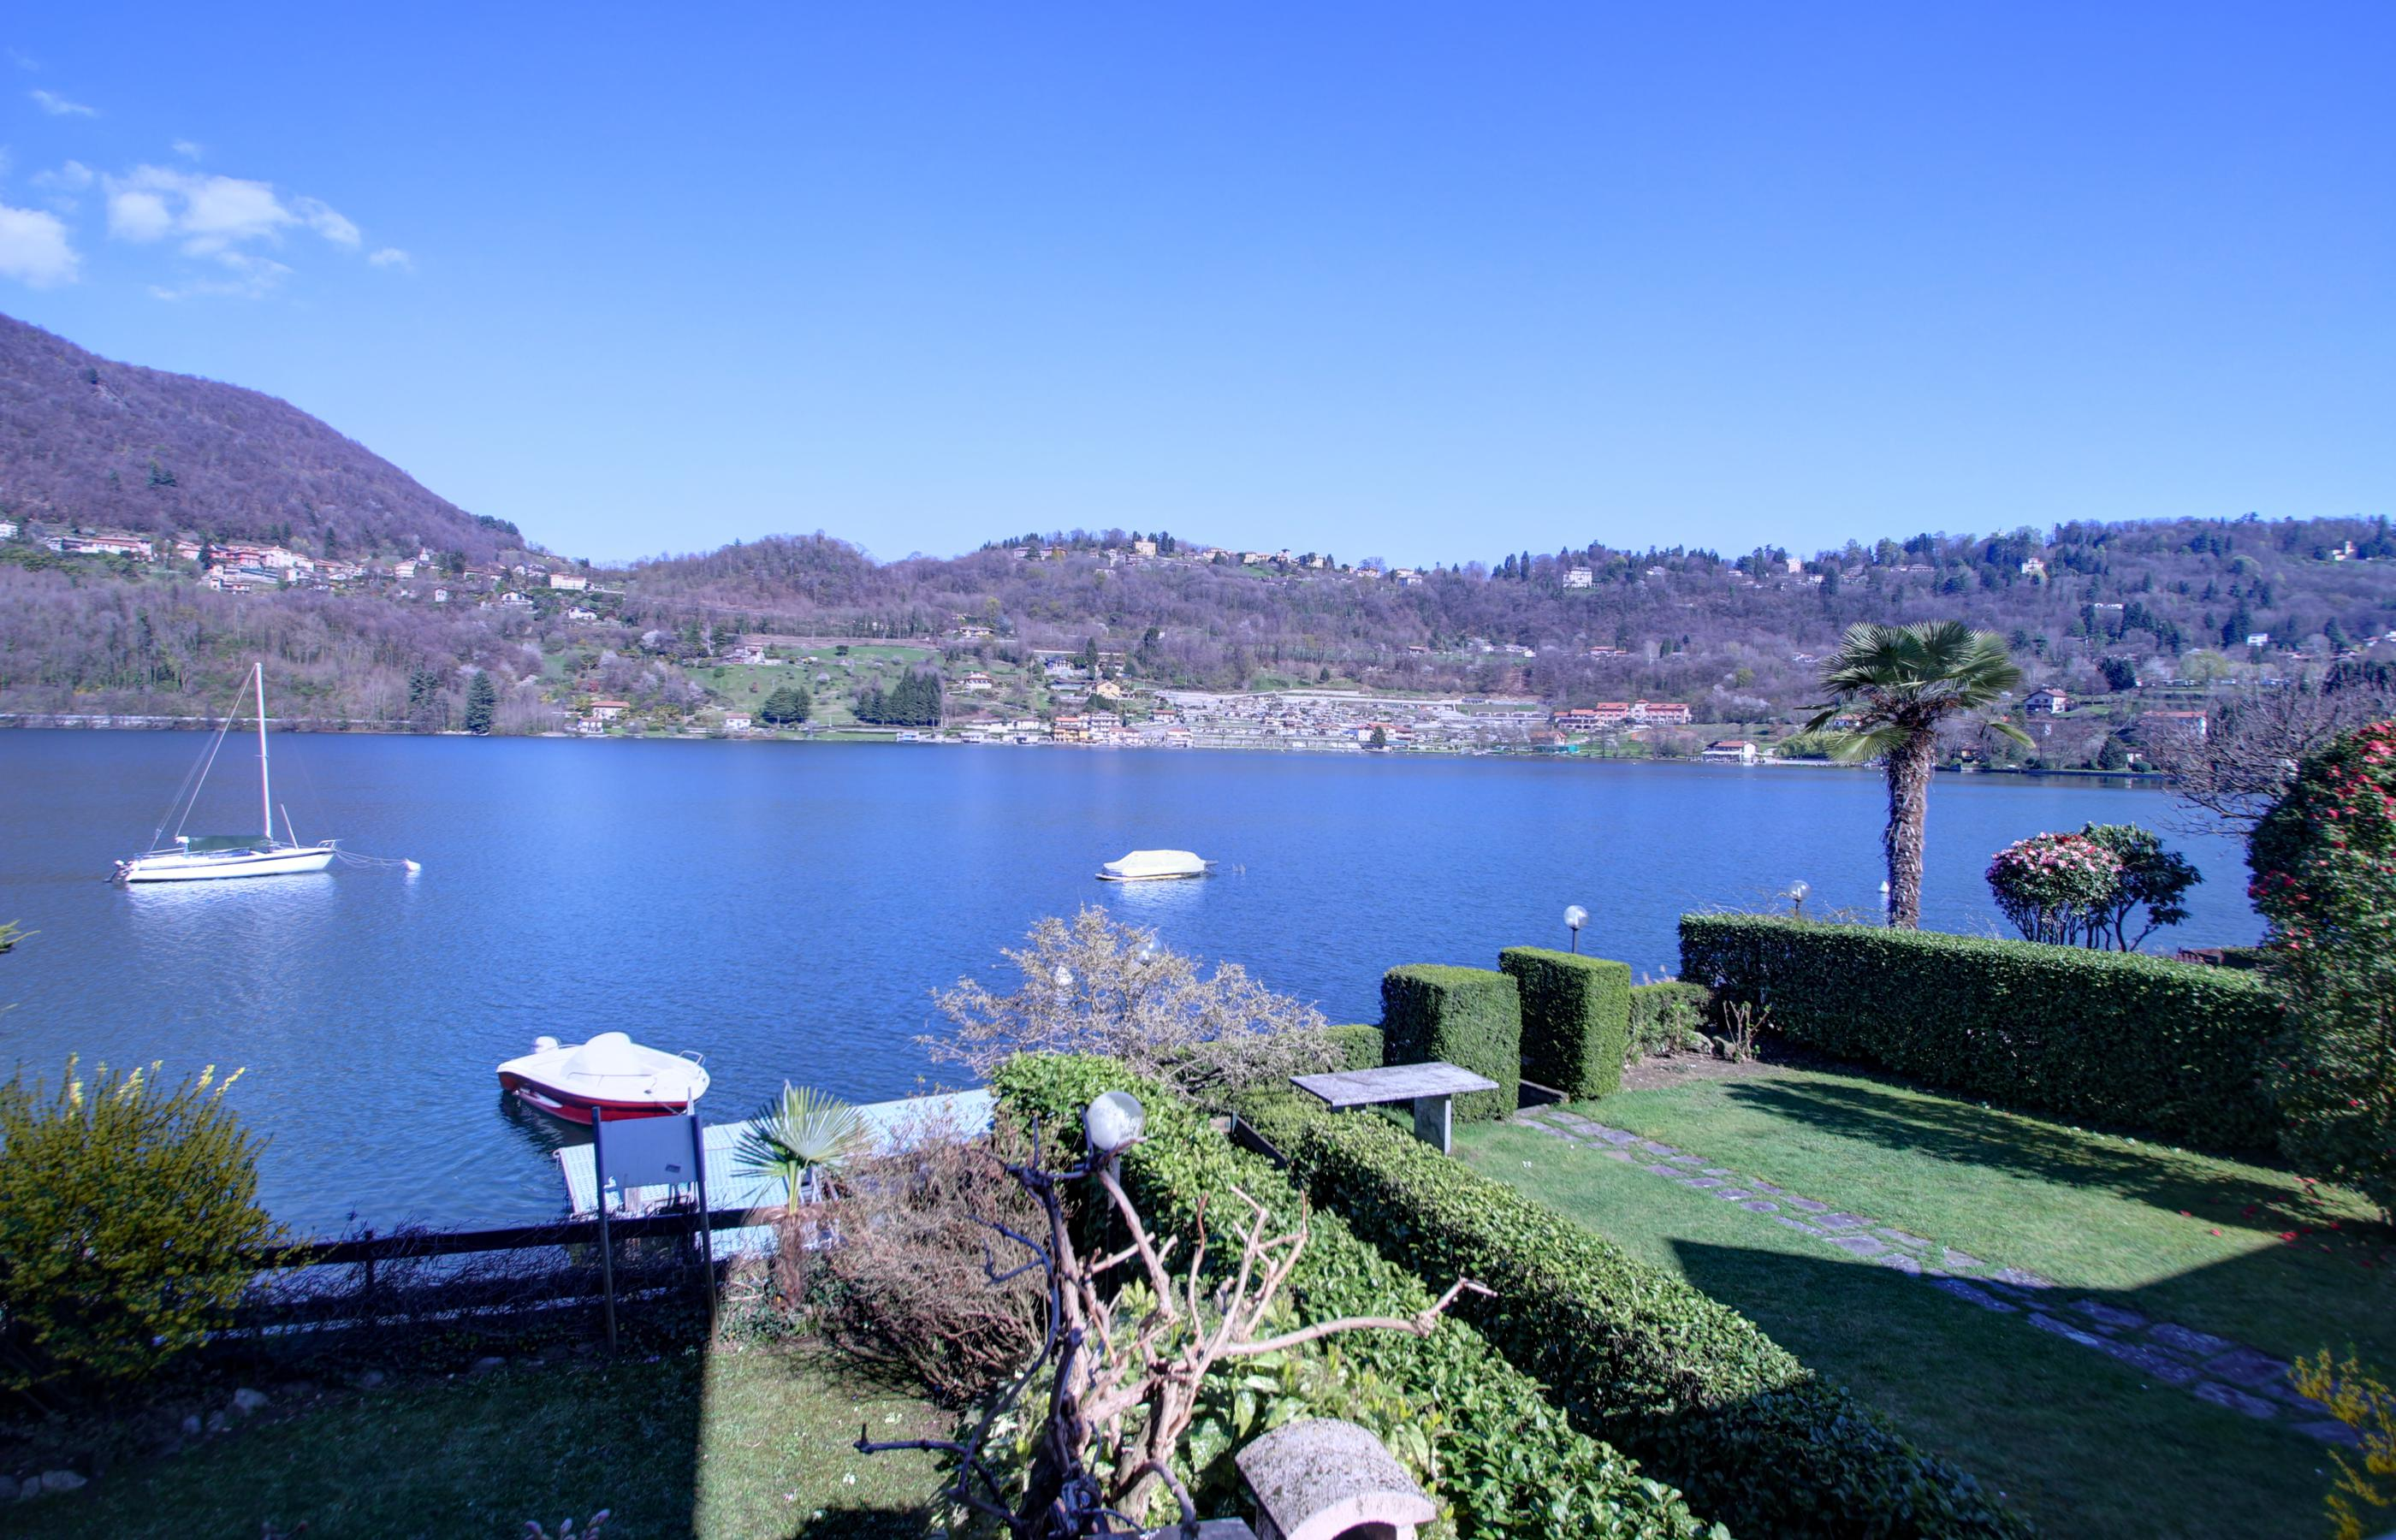 ORTA Two bedroom apartment directly on the lake